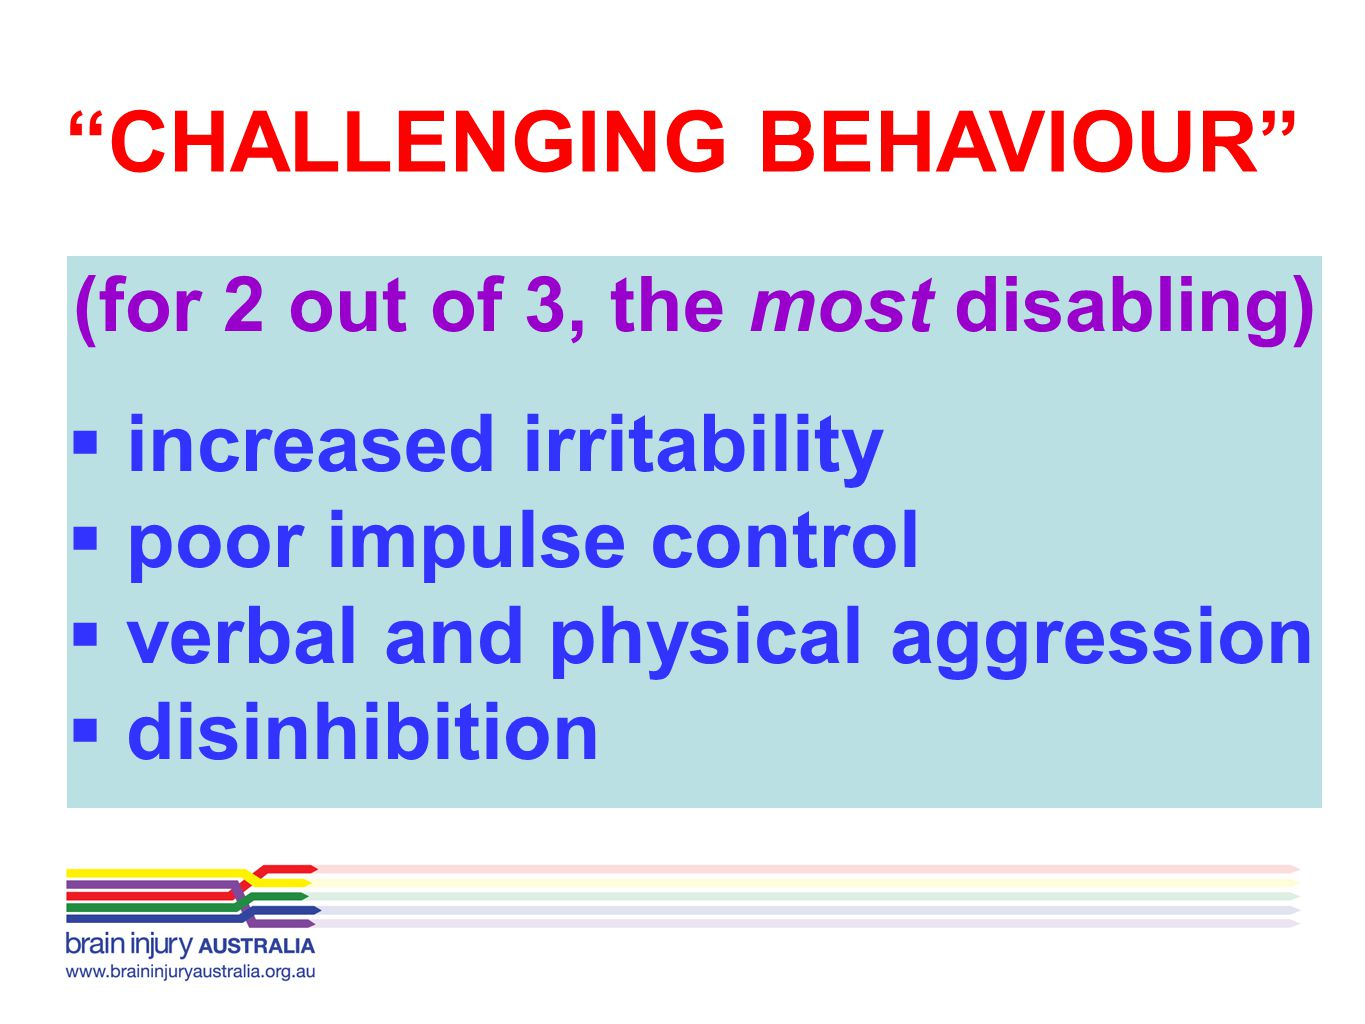 CHALLENGING BEHAVIOUR (for 2 out of 3, the most disabling)